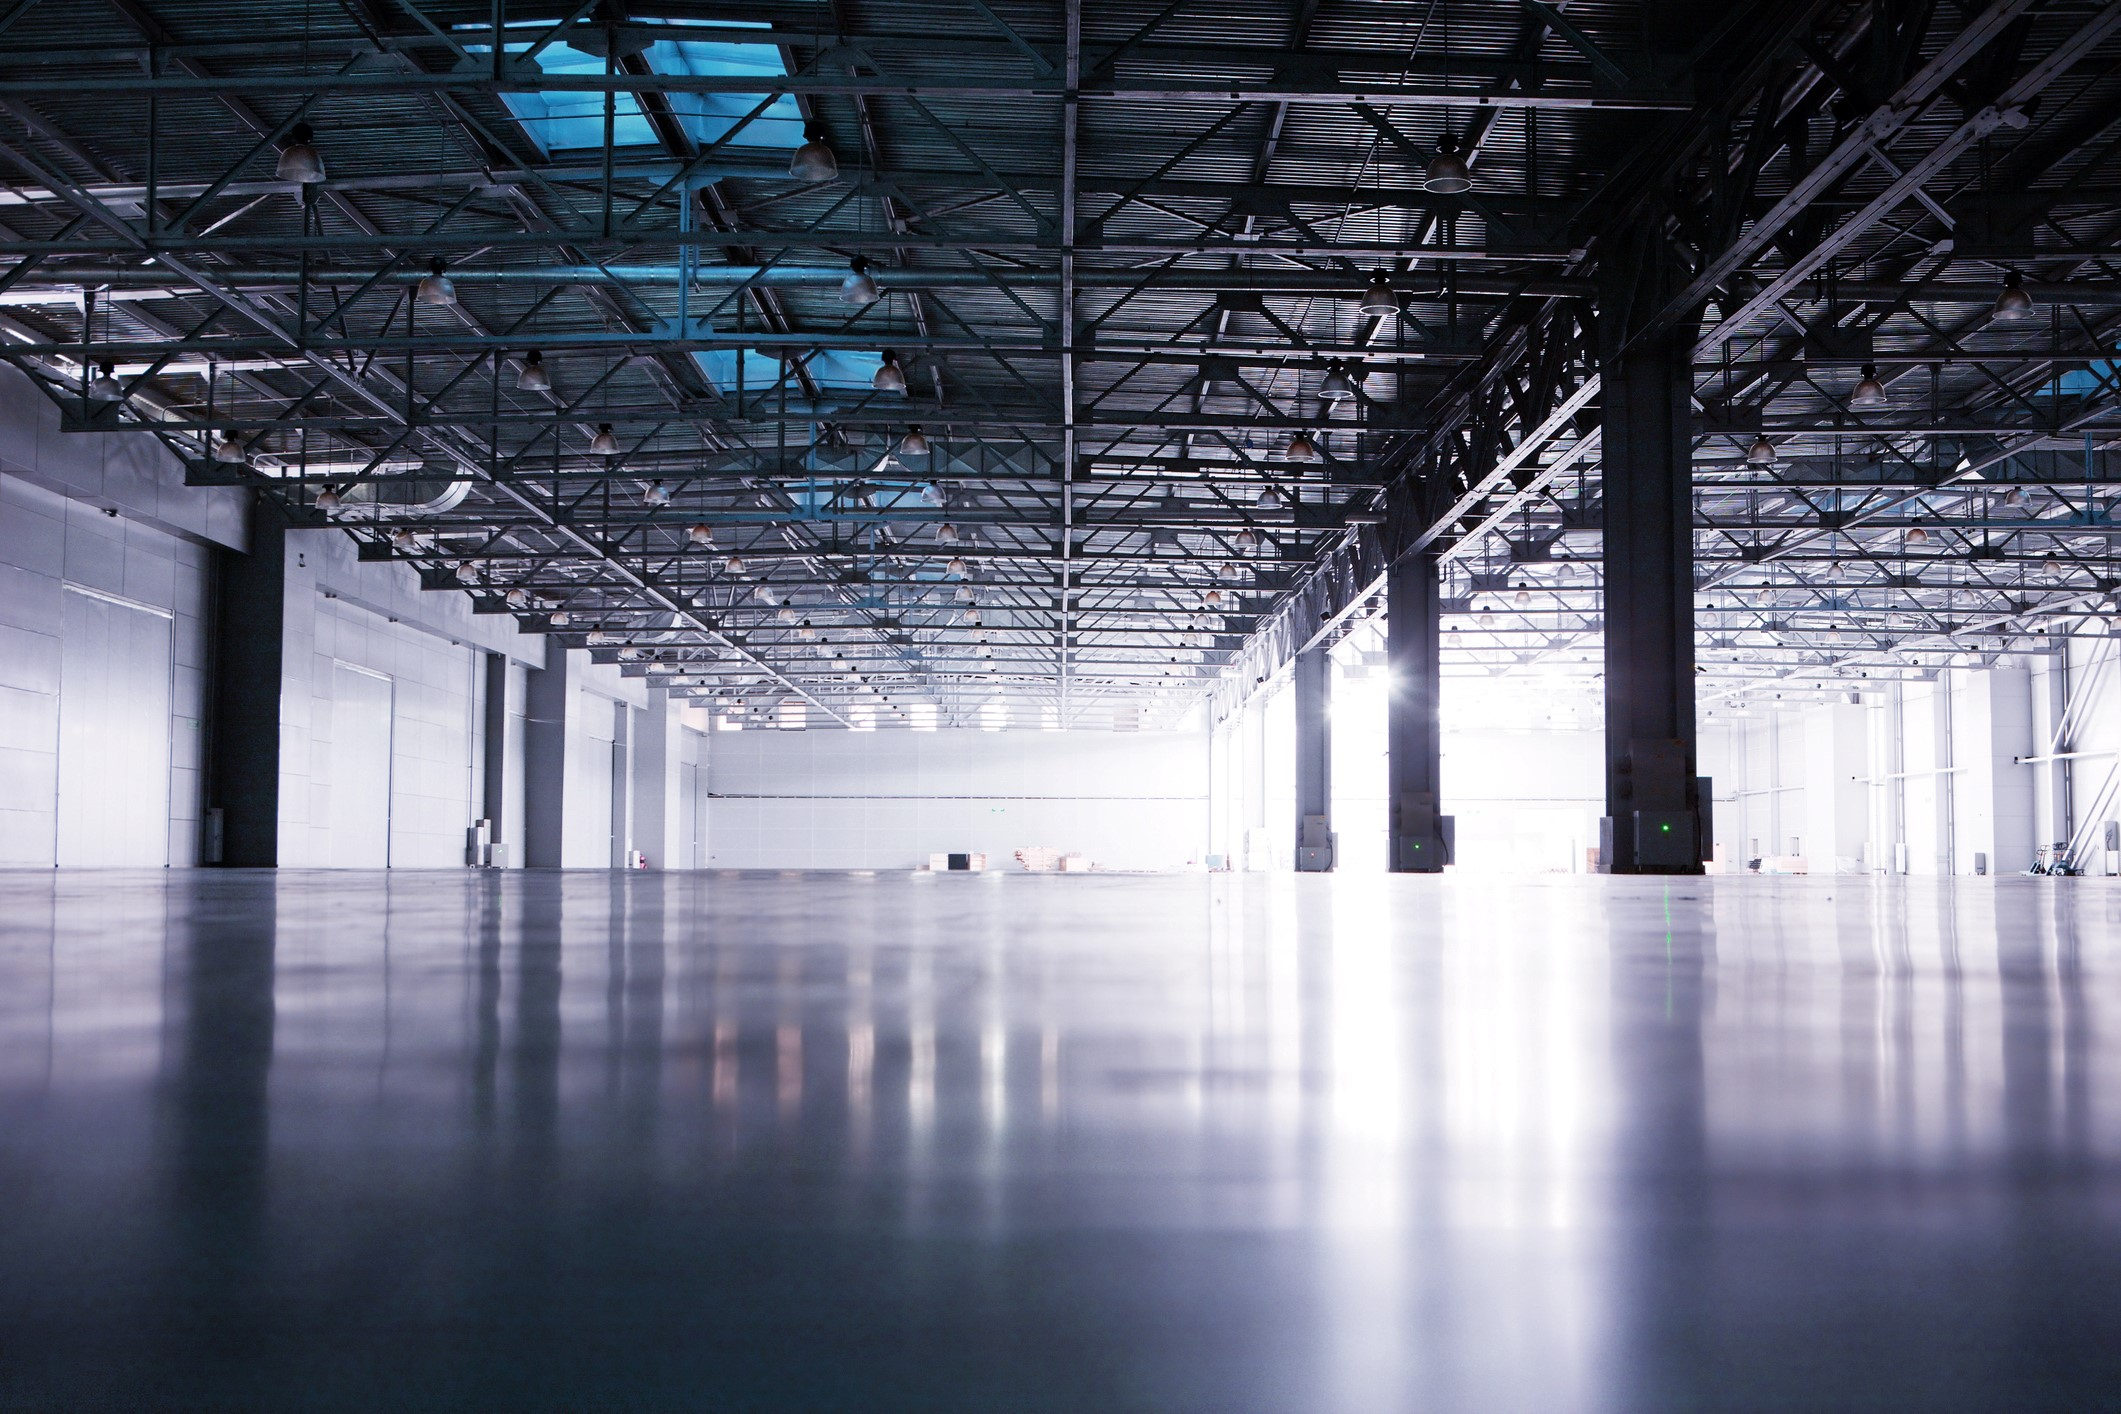 Smart Cooling - 57,500 sq. ft. of smart cold rooms paving the way for a more sustainable future